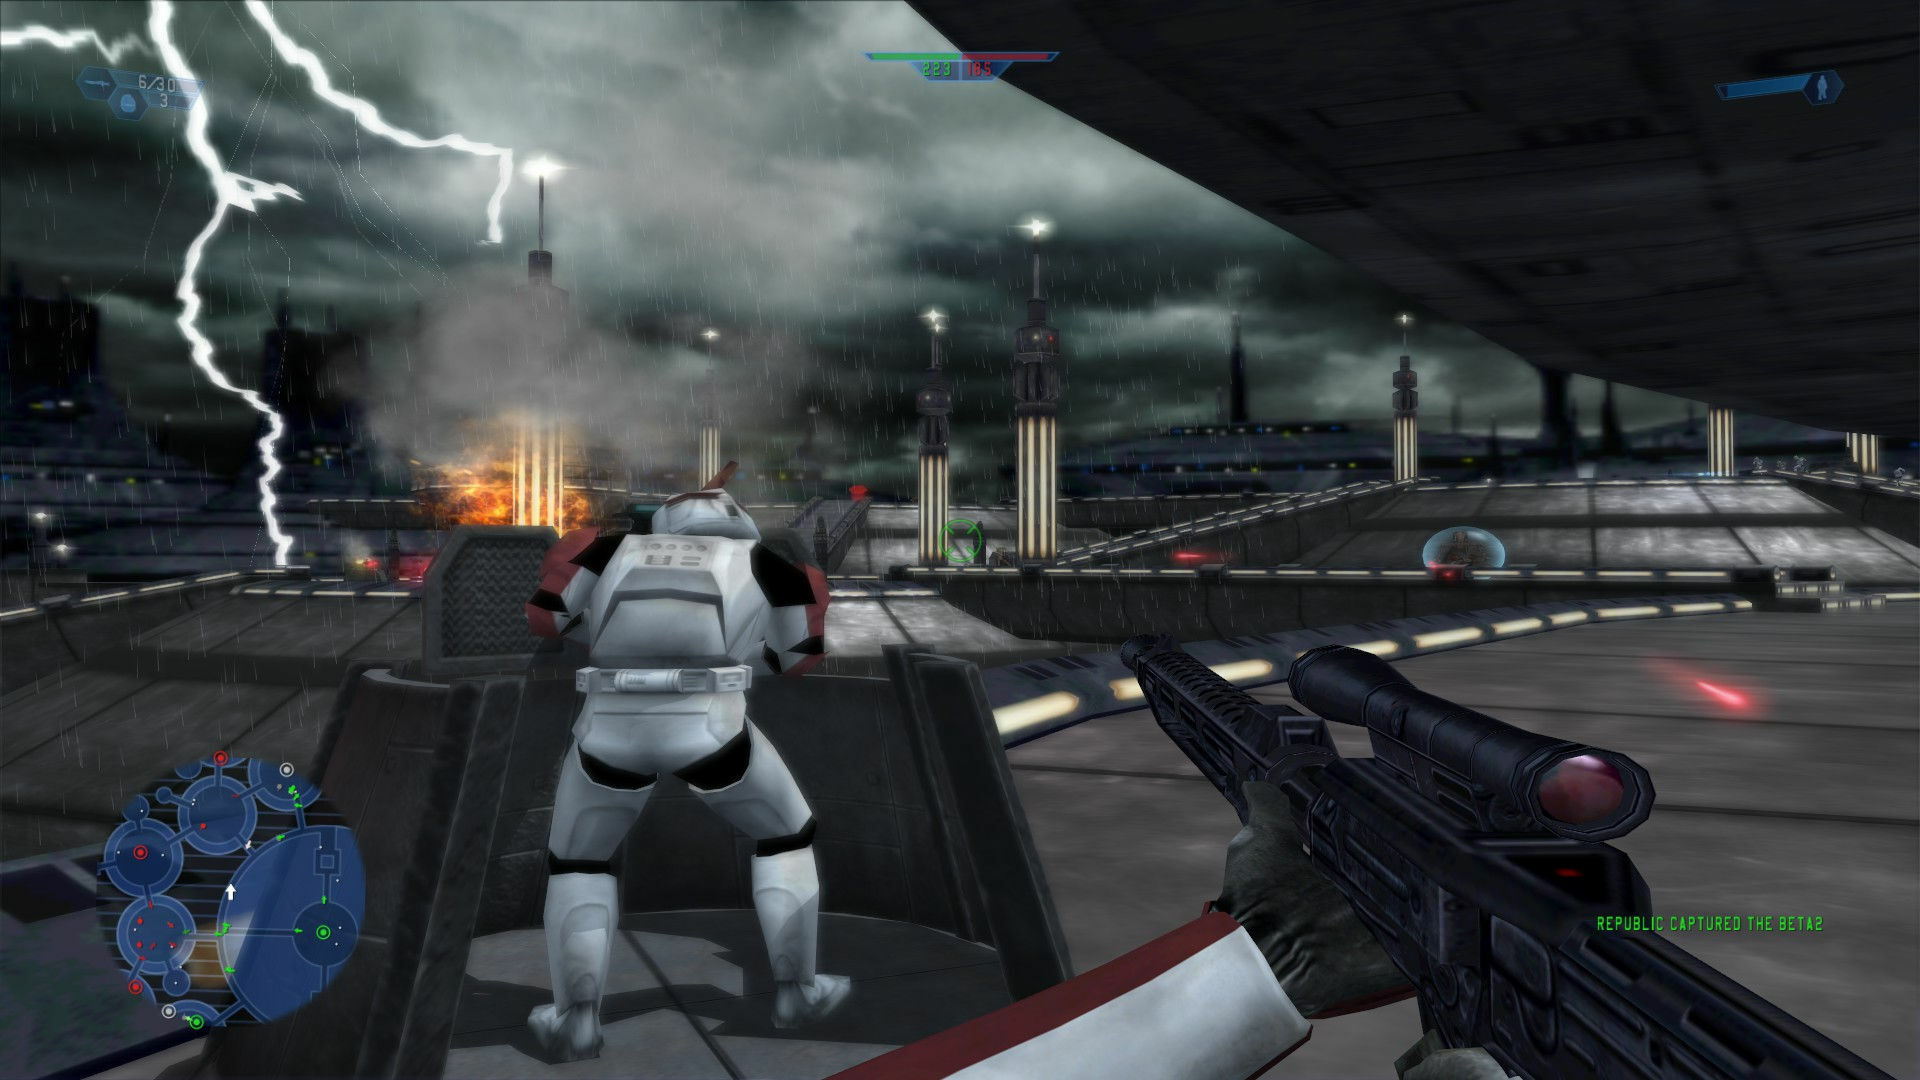 Star Wars: Battlefront screenshot 1